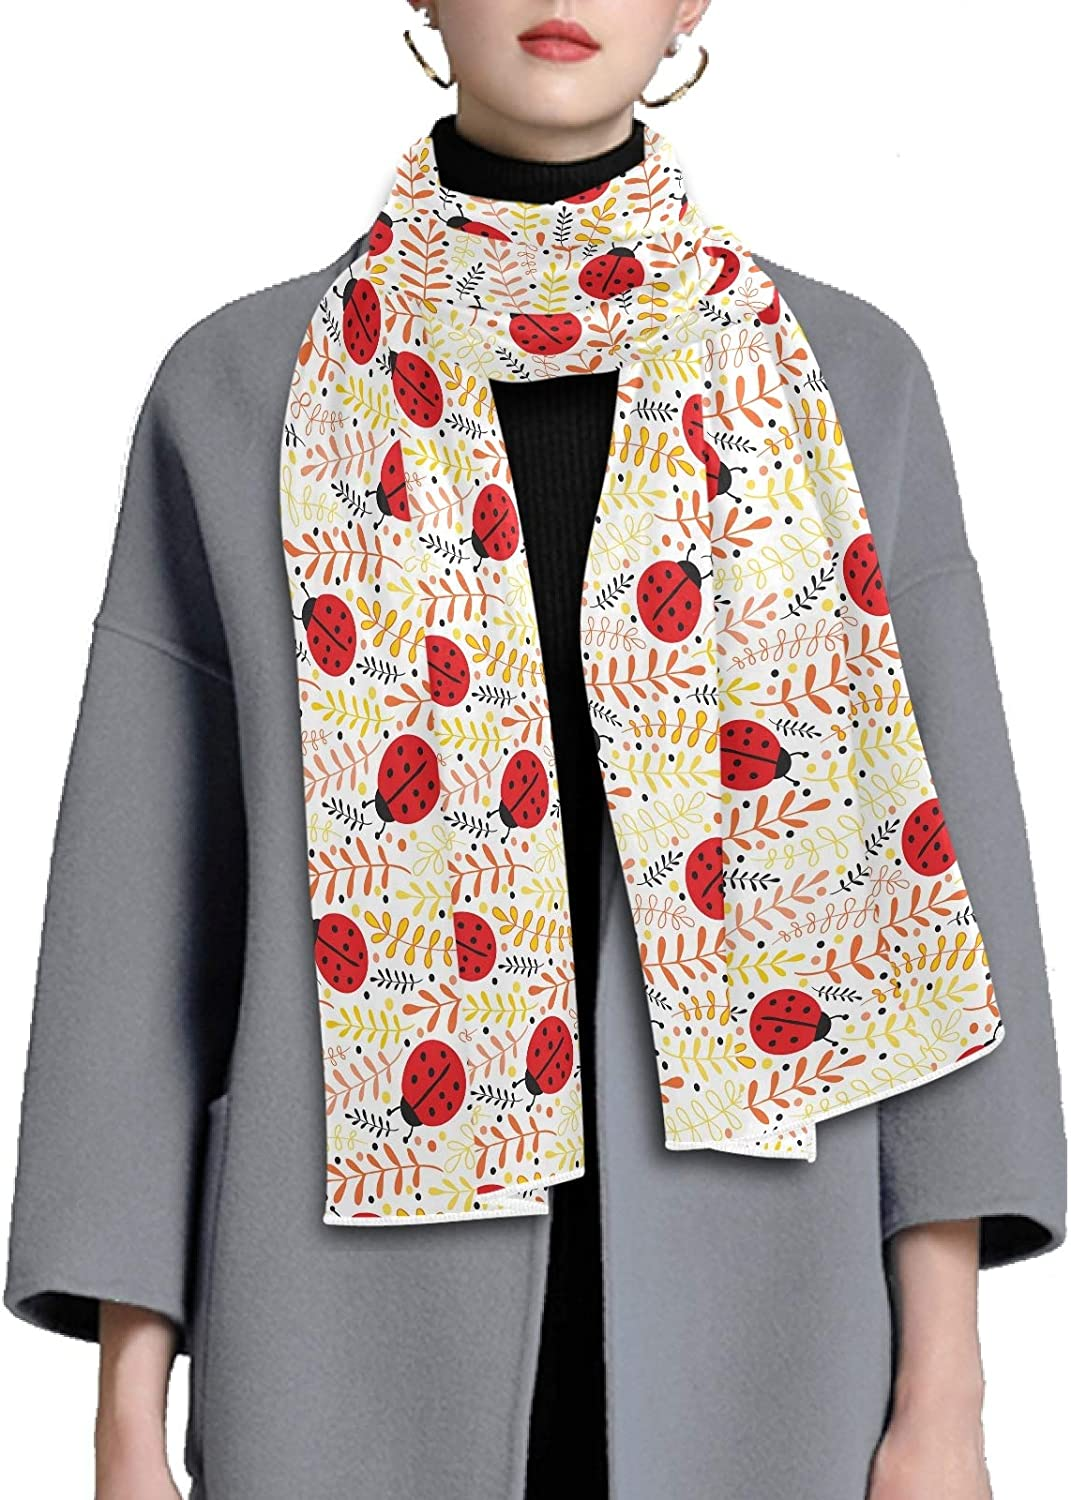 Scarf for Women and Men Cactus Shawl Wraps Blanket Scarf Thick Soft Winter Large Scarves Lightweight